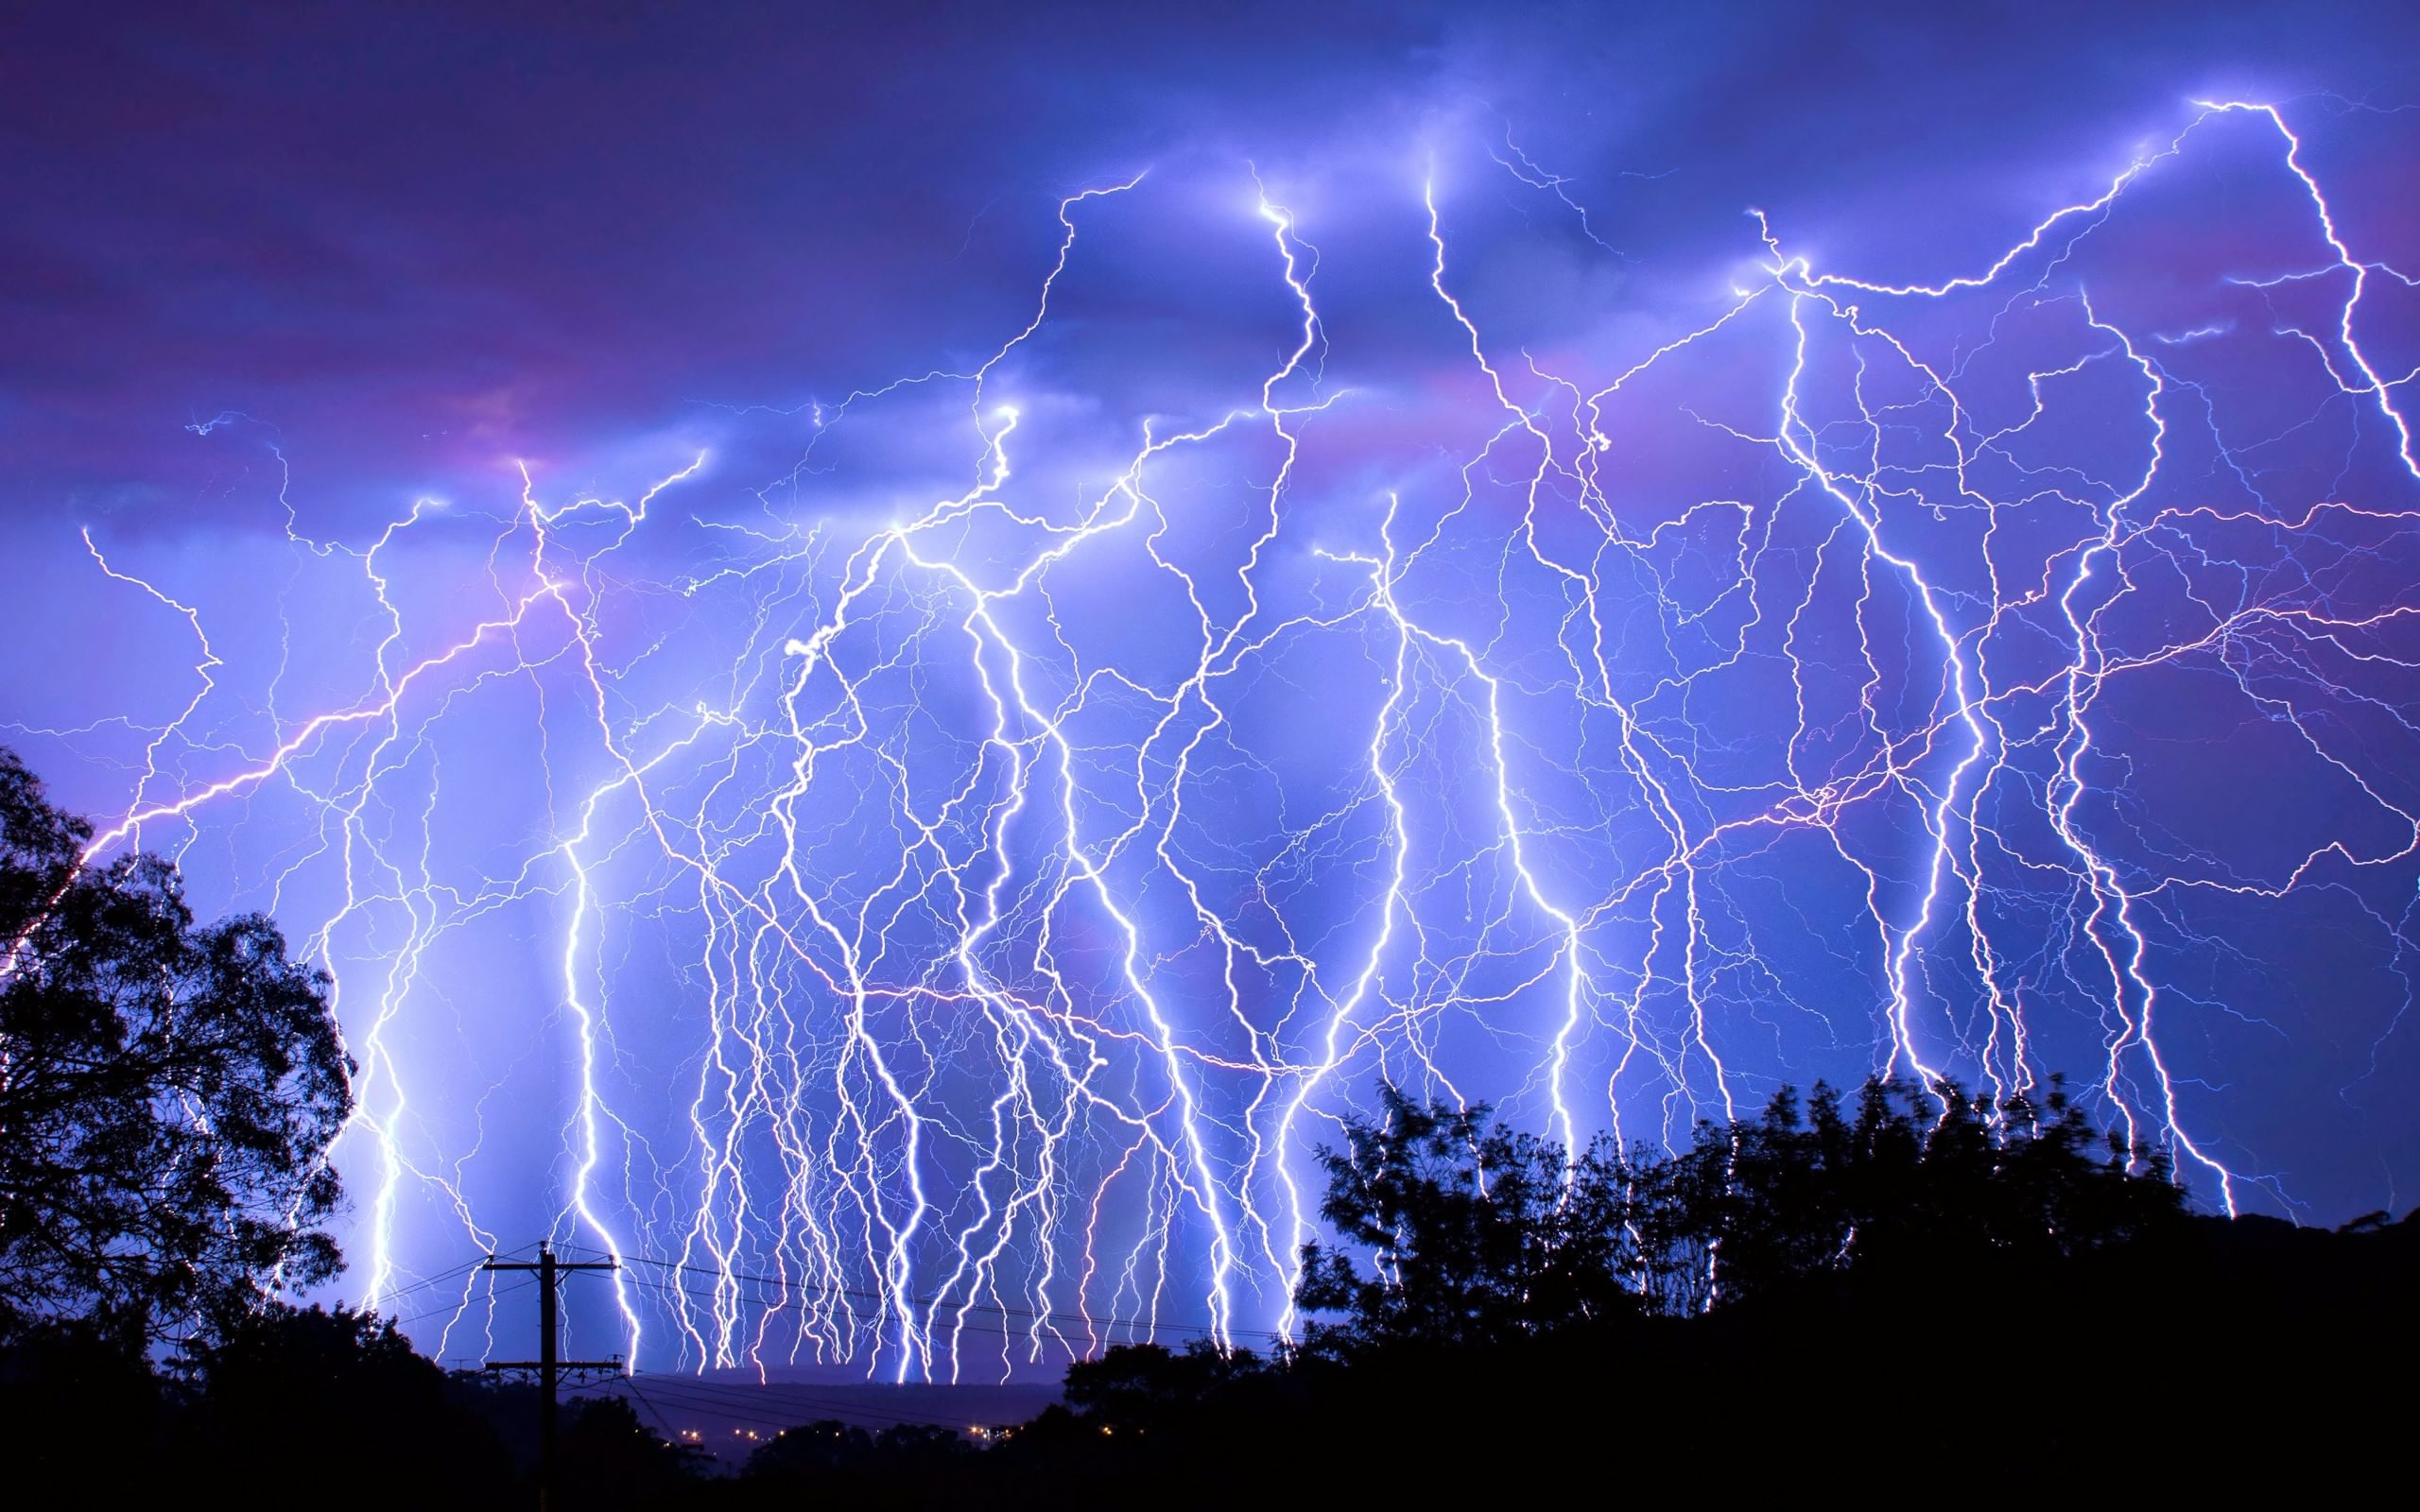 Lightning Storm Hd Wallpaper Background Image 2560x1600 Id 1007351 Wallpaper Abyss